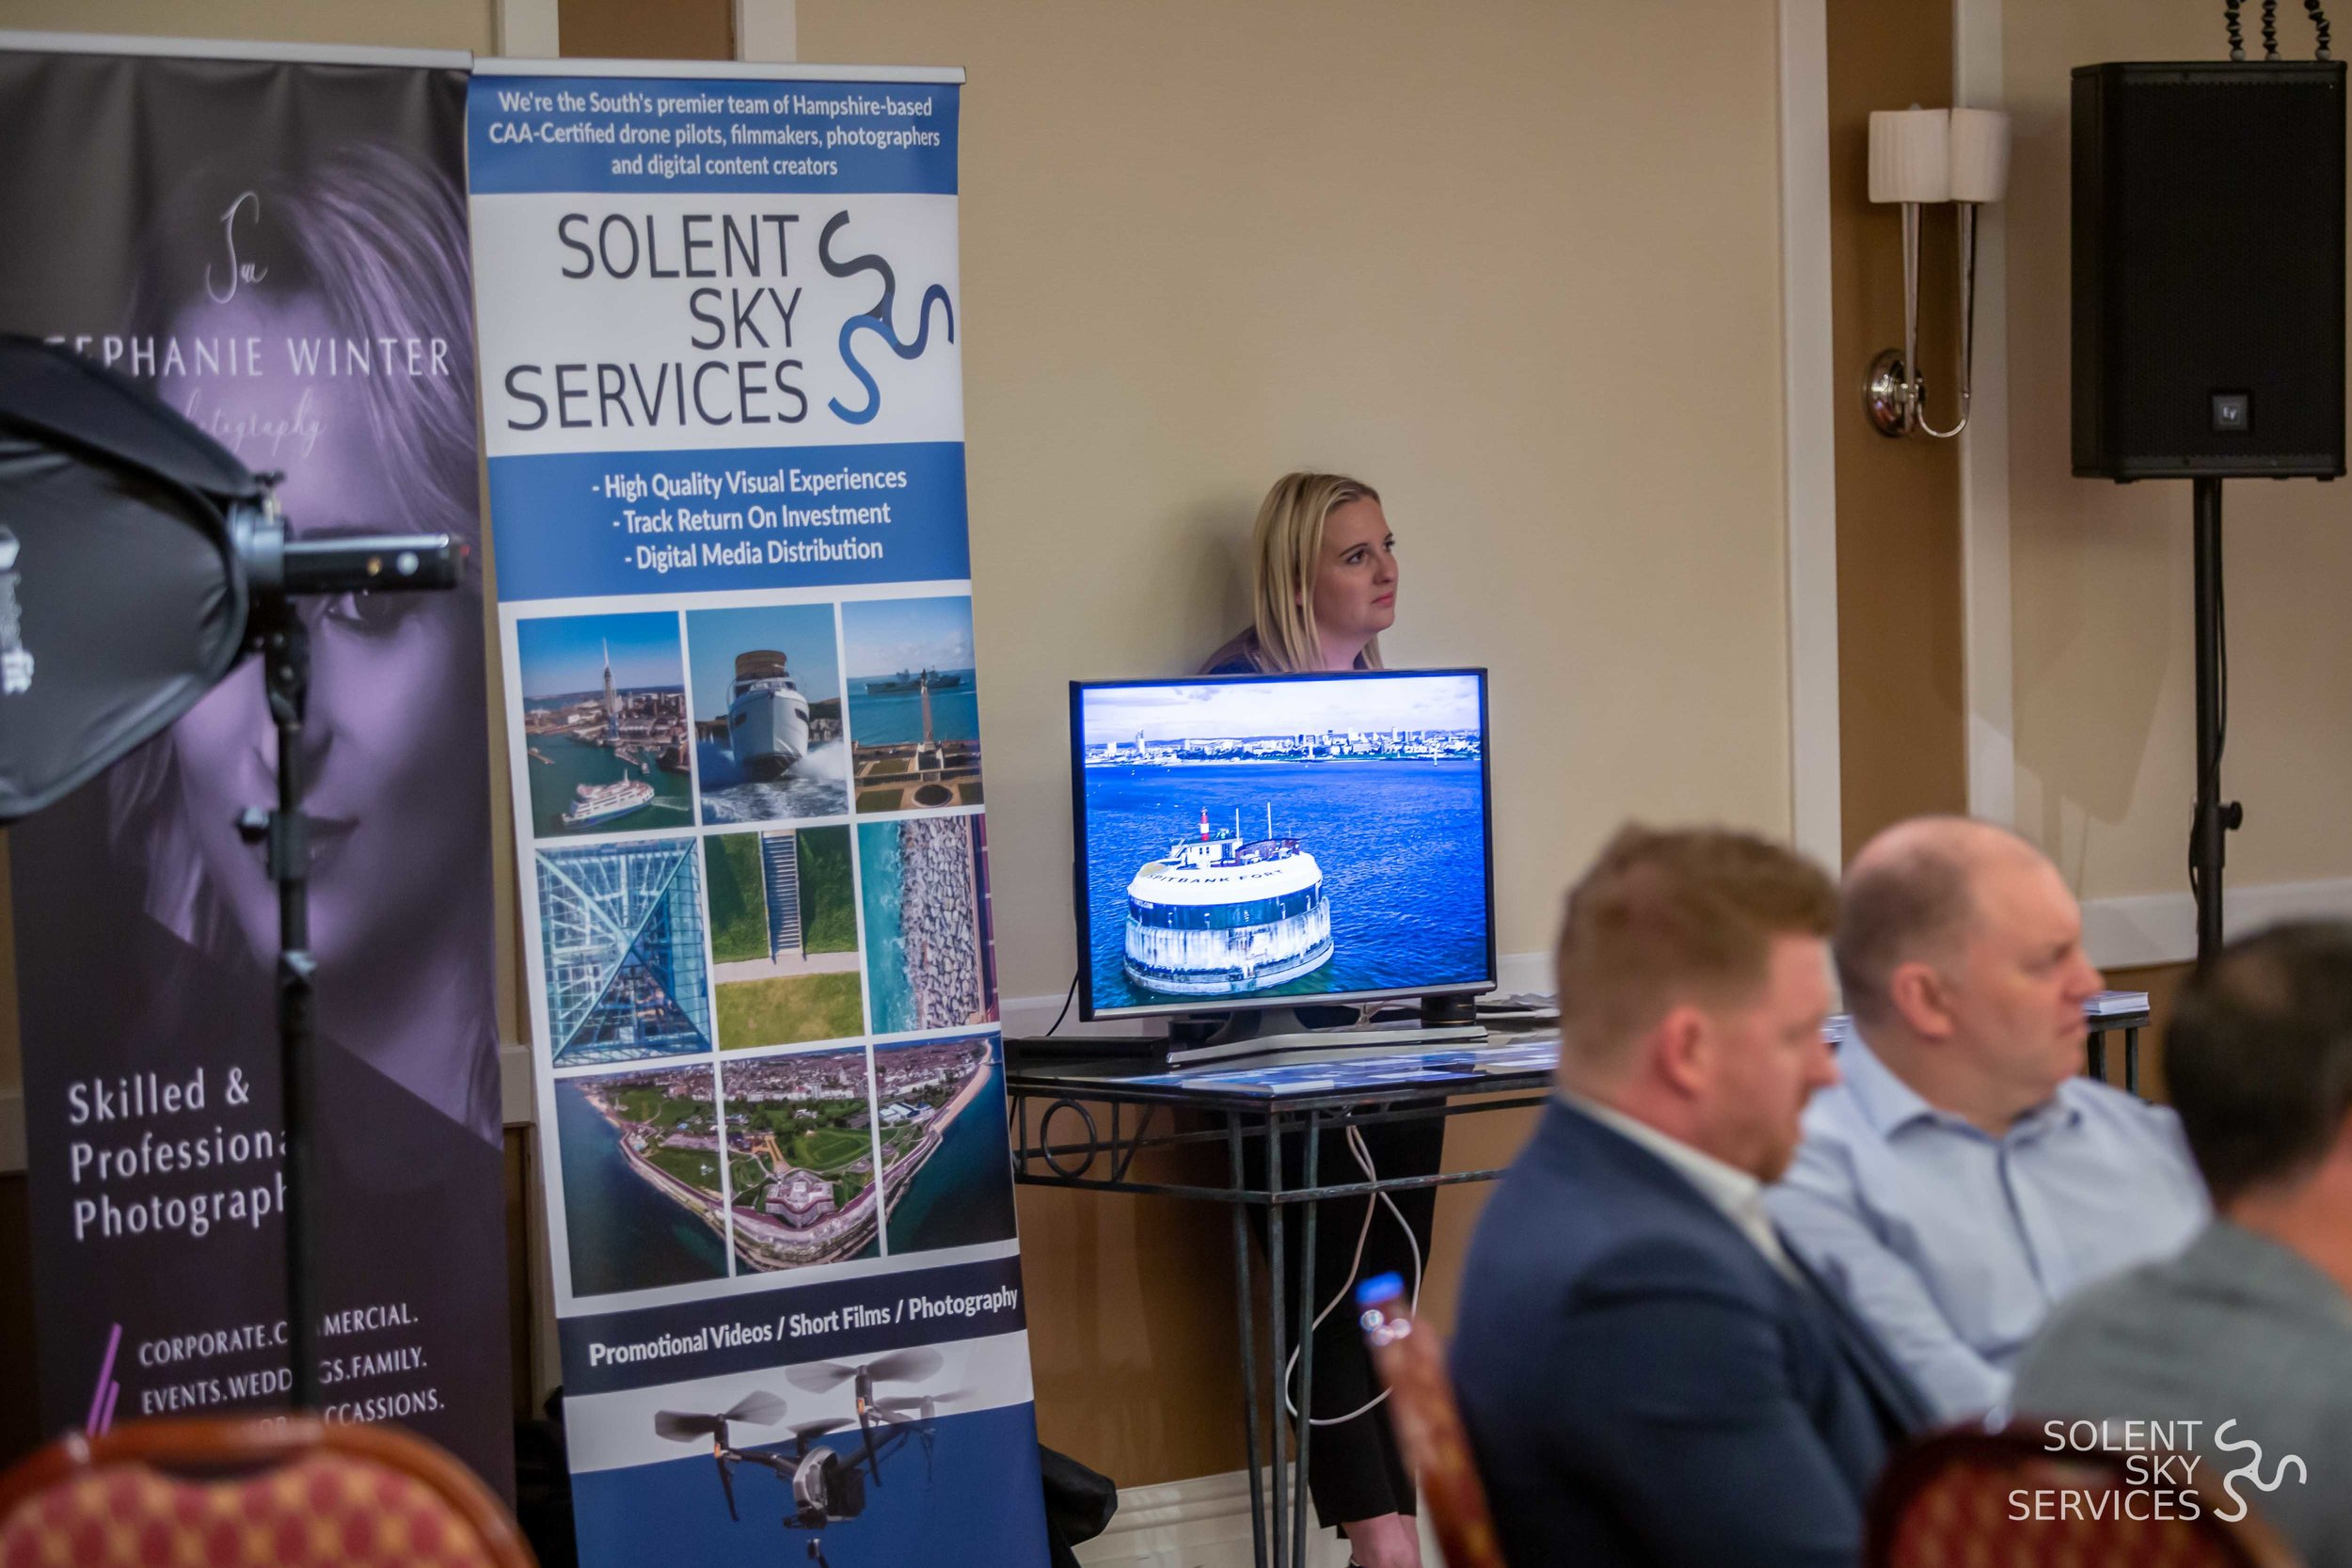 Synergy Success Networking Event #2 - Solent Sky Services-44.JPG